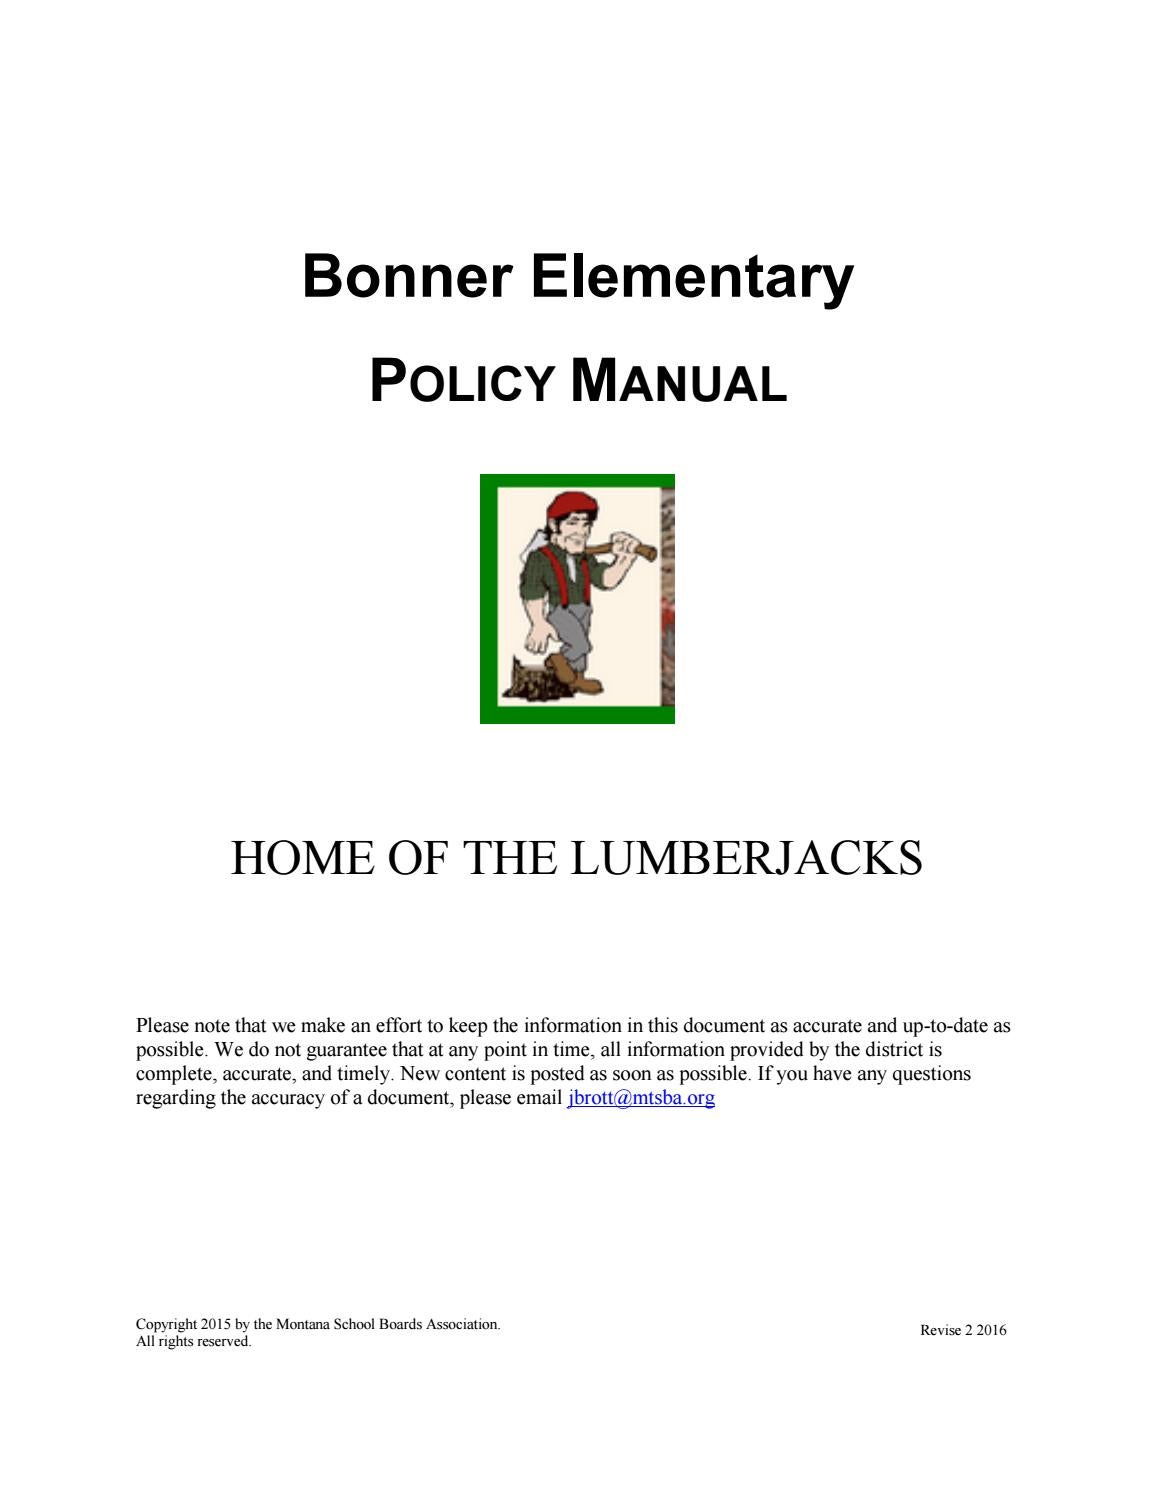 Bonner Elementary Policy Manual by Montana School Boards Association - issuu